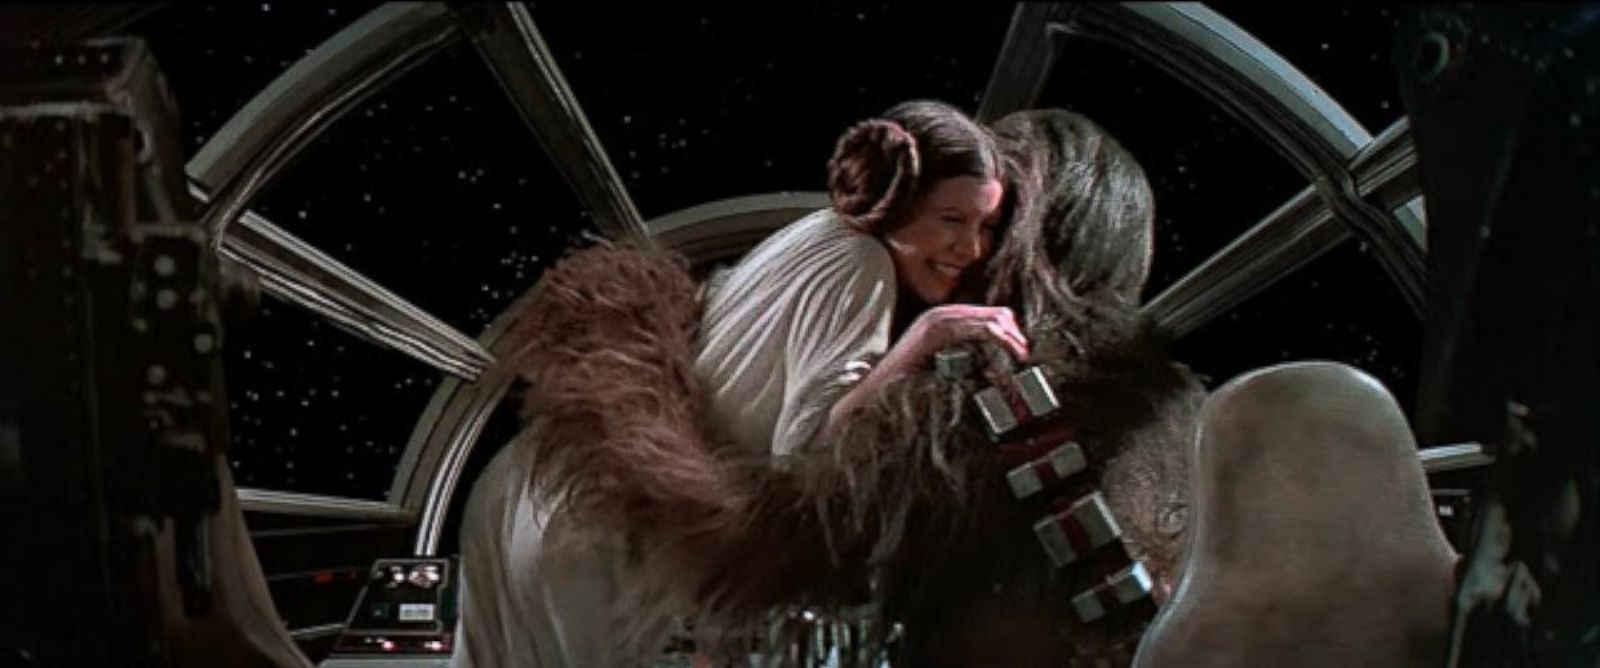 PHOTO: Princess Leia hugs Chewbacca in the original Star Wars, 1977.